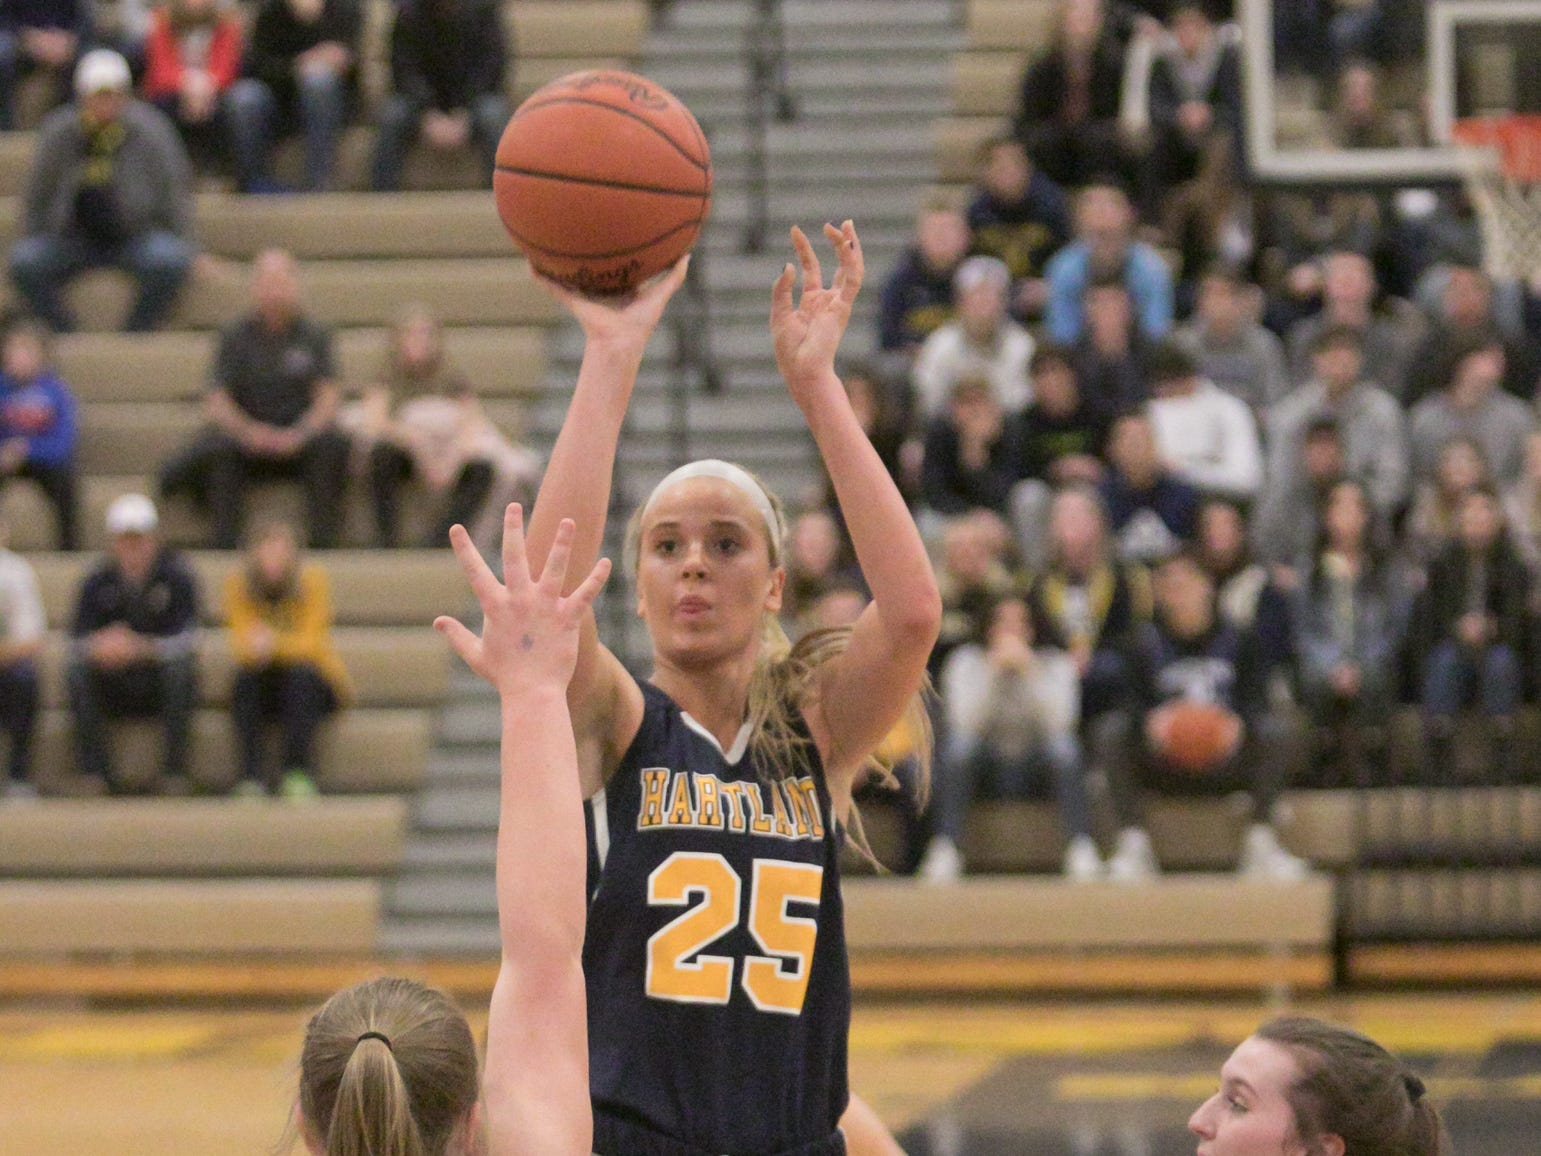 Whitney Sollom of Hartland makes this shot in the first period of district championship play against Howell Friday, March 8, 2019.